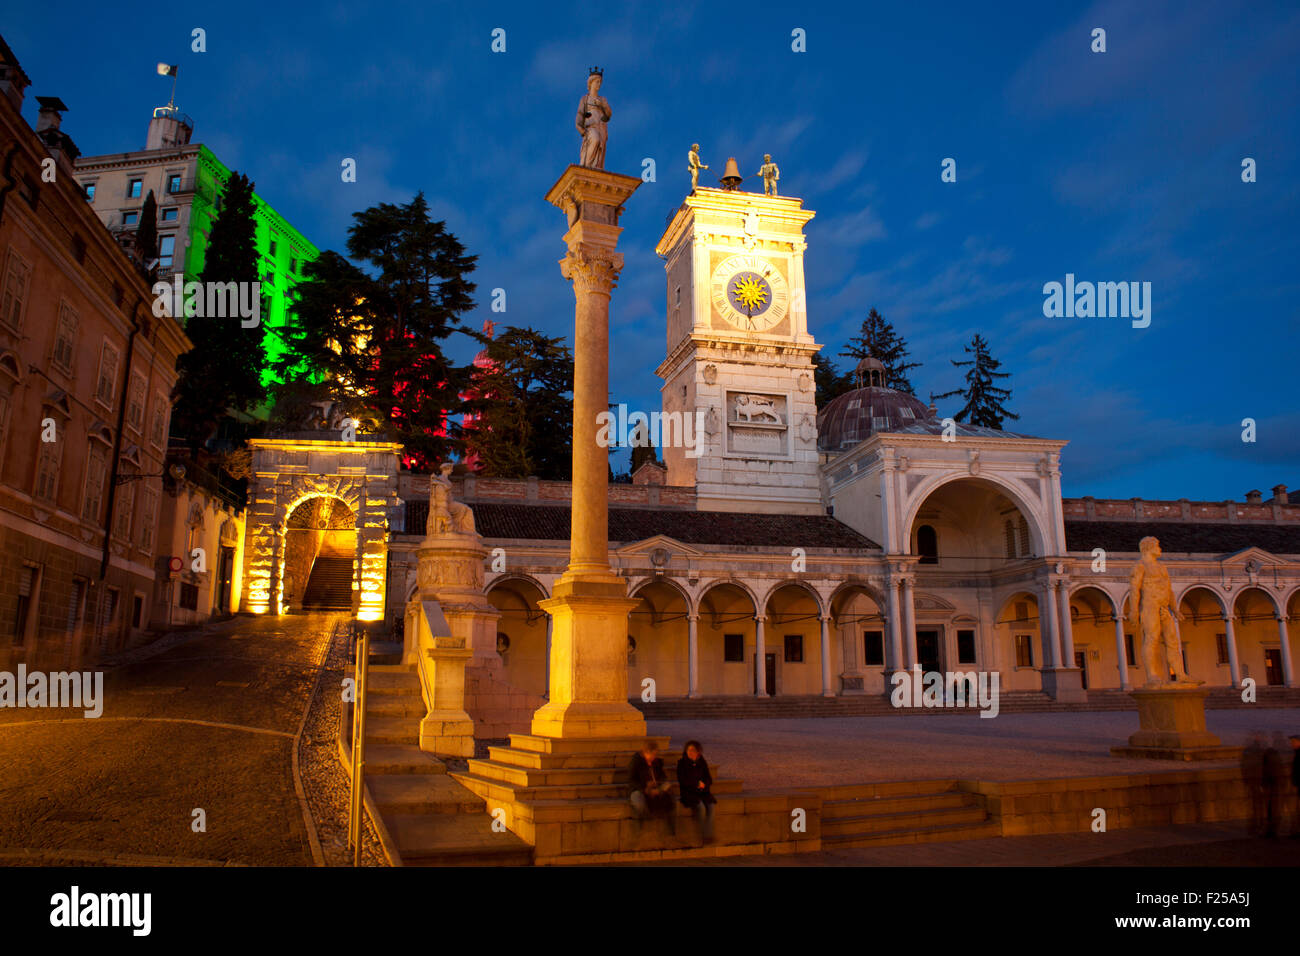 View of Piazza Libertà, Udine - Italy - Stock Image